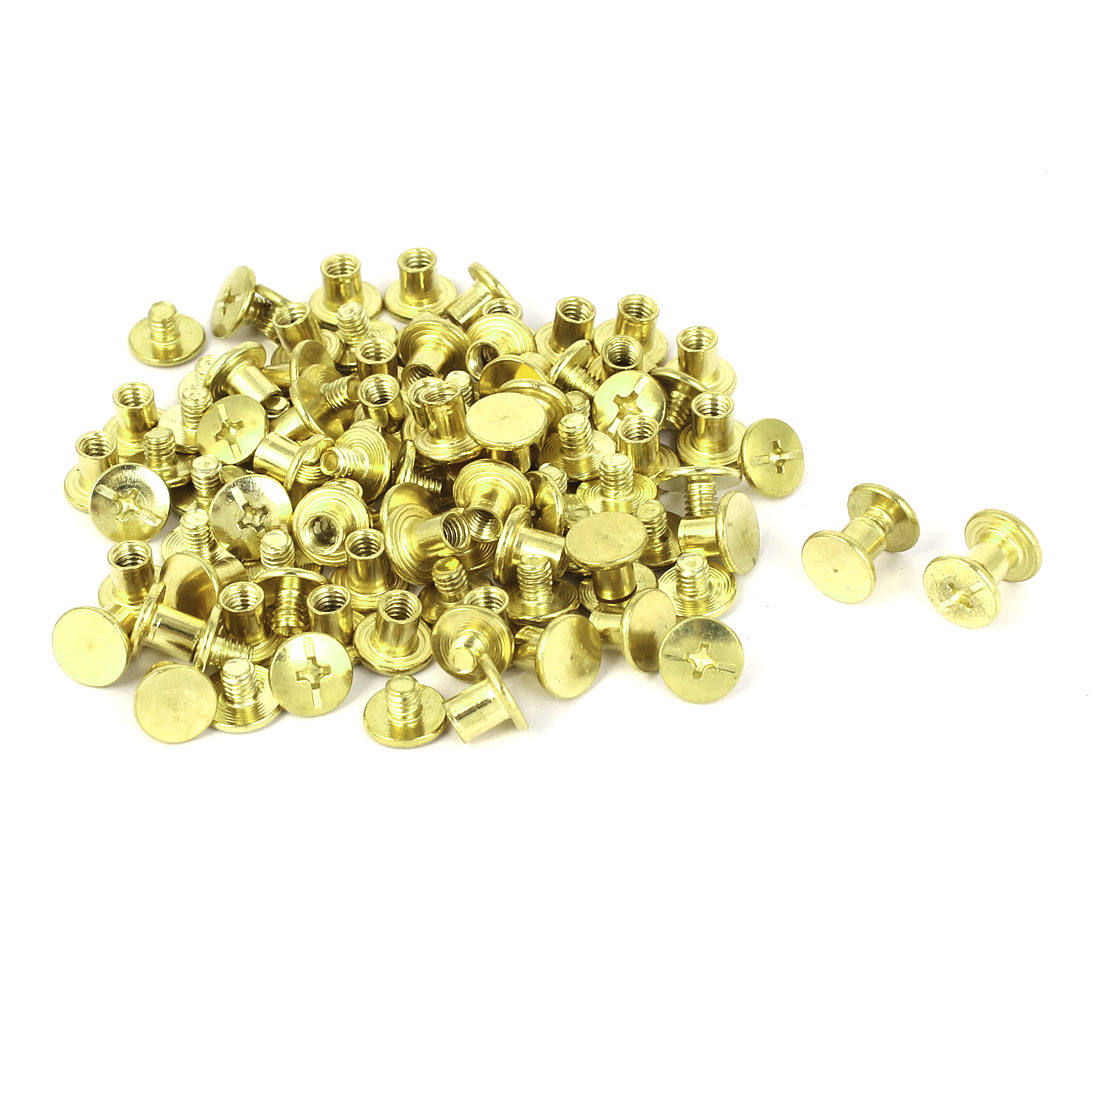 Brass Plated Chicago Screws Binding Posts Docking Rivet 5mmx6mm 50pcs